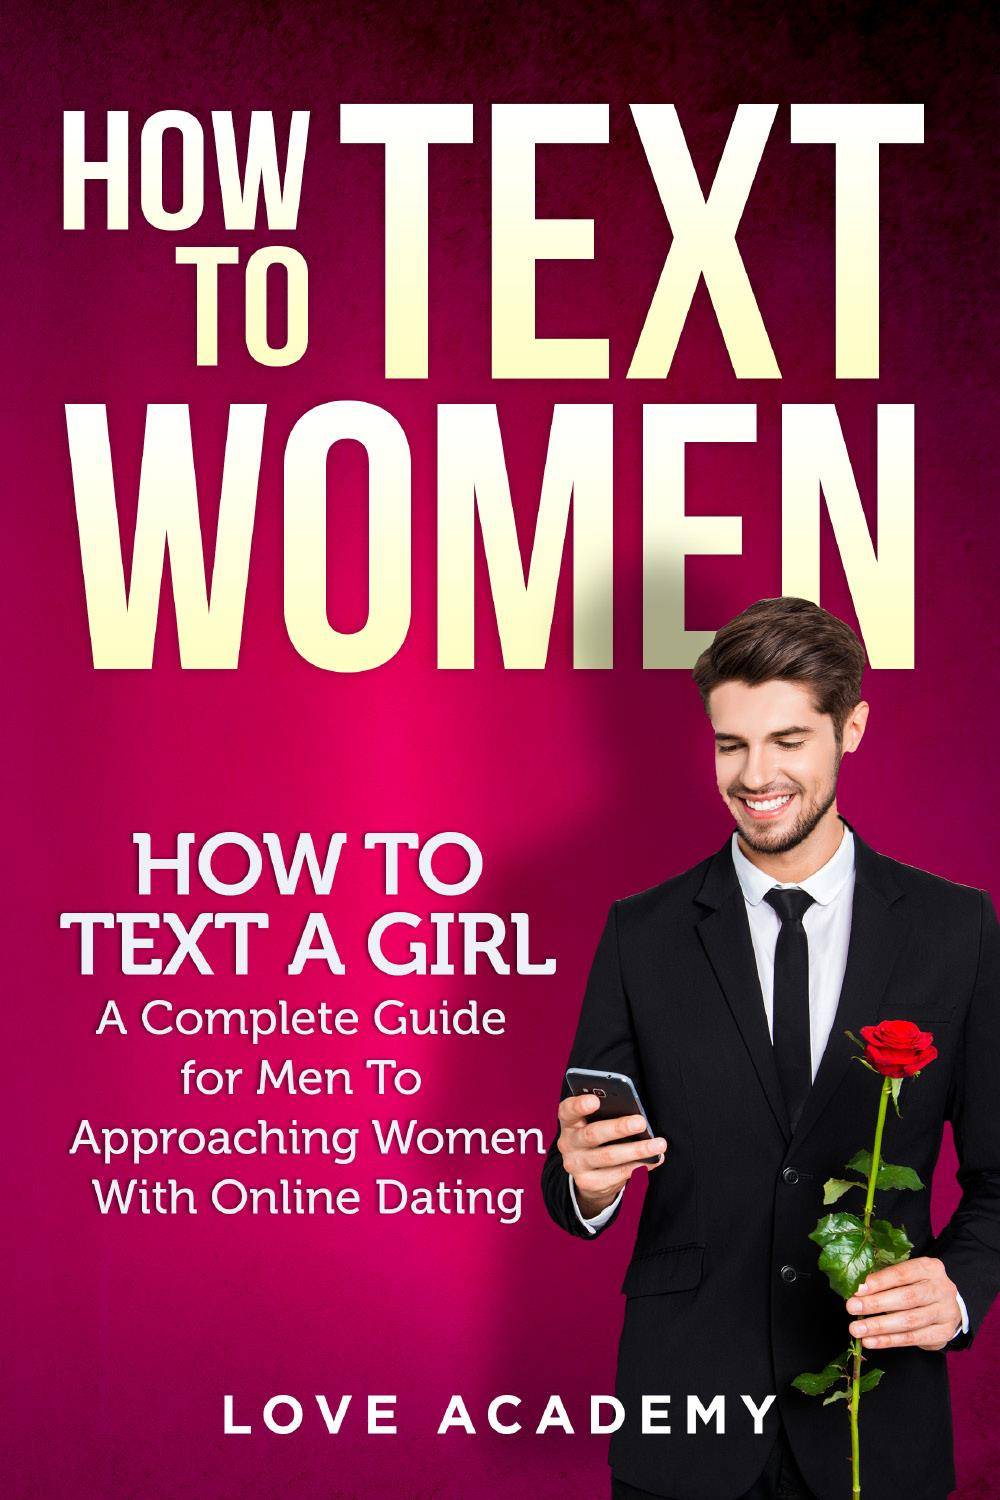 HOW TO TEXT WOMEN. How To Text a Girl, A Complete Guide for Men To Approaching Women With Online Dating